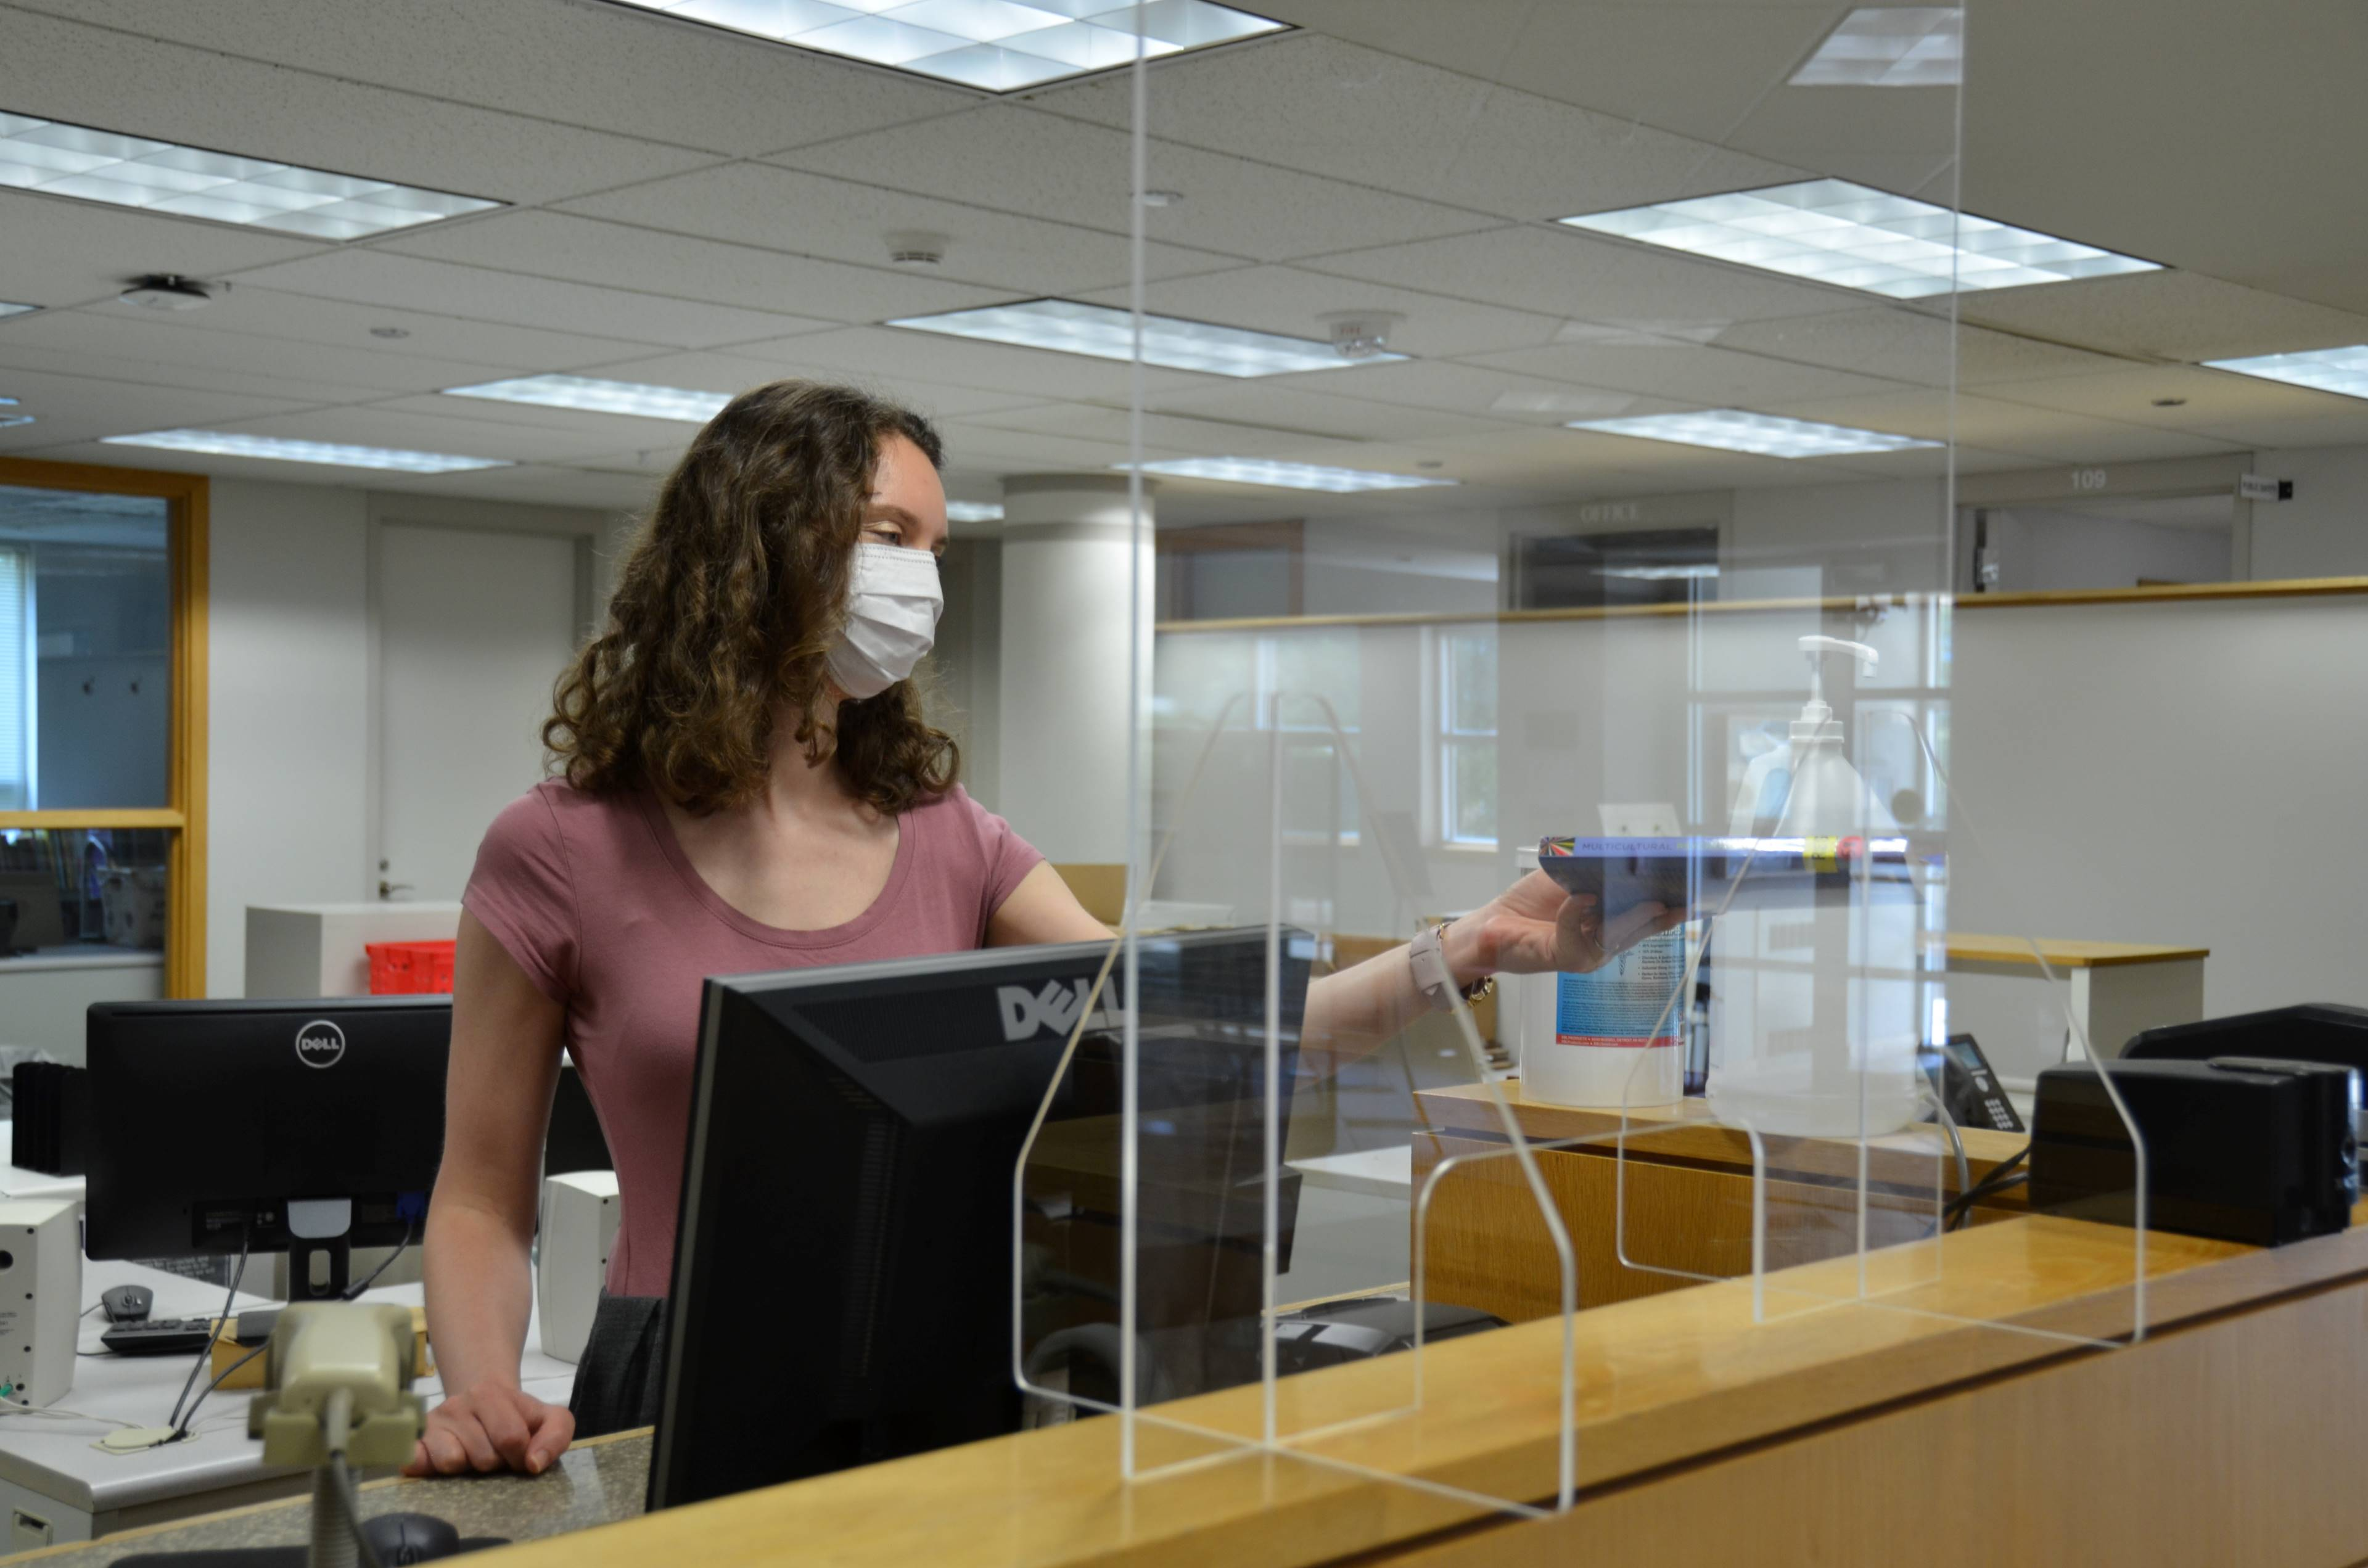 Alvernia University Health and Safety Protocols in Franco Library